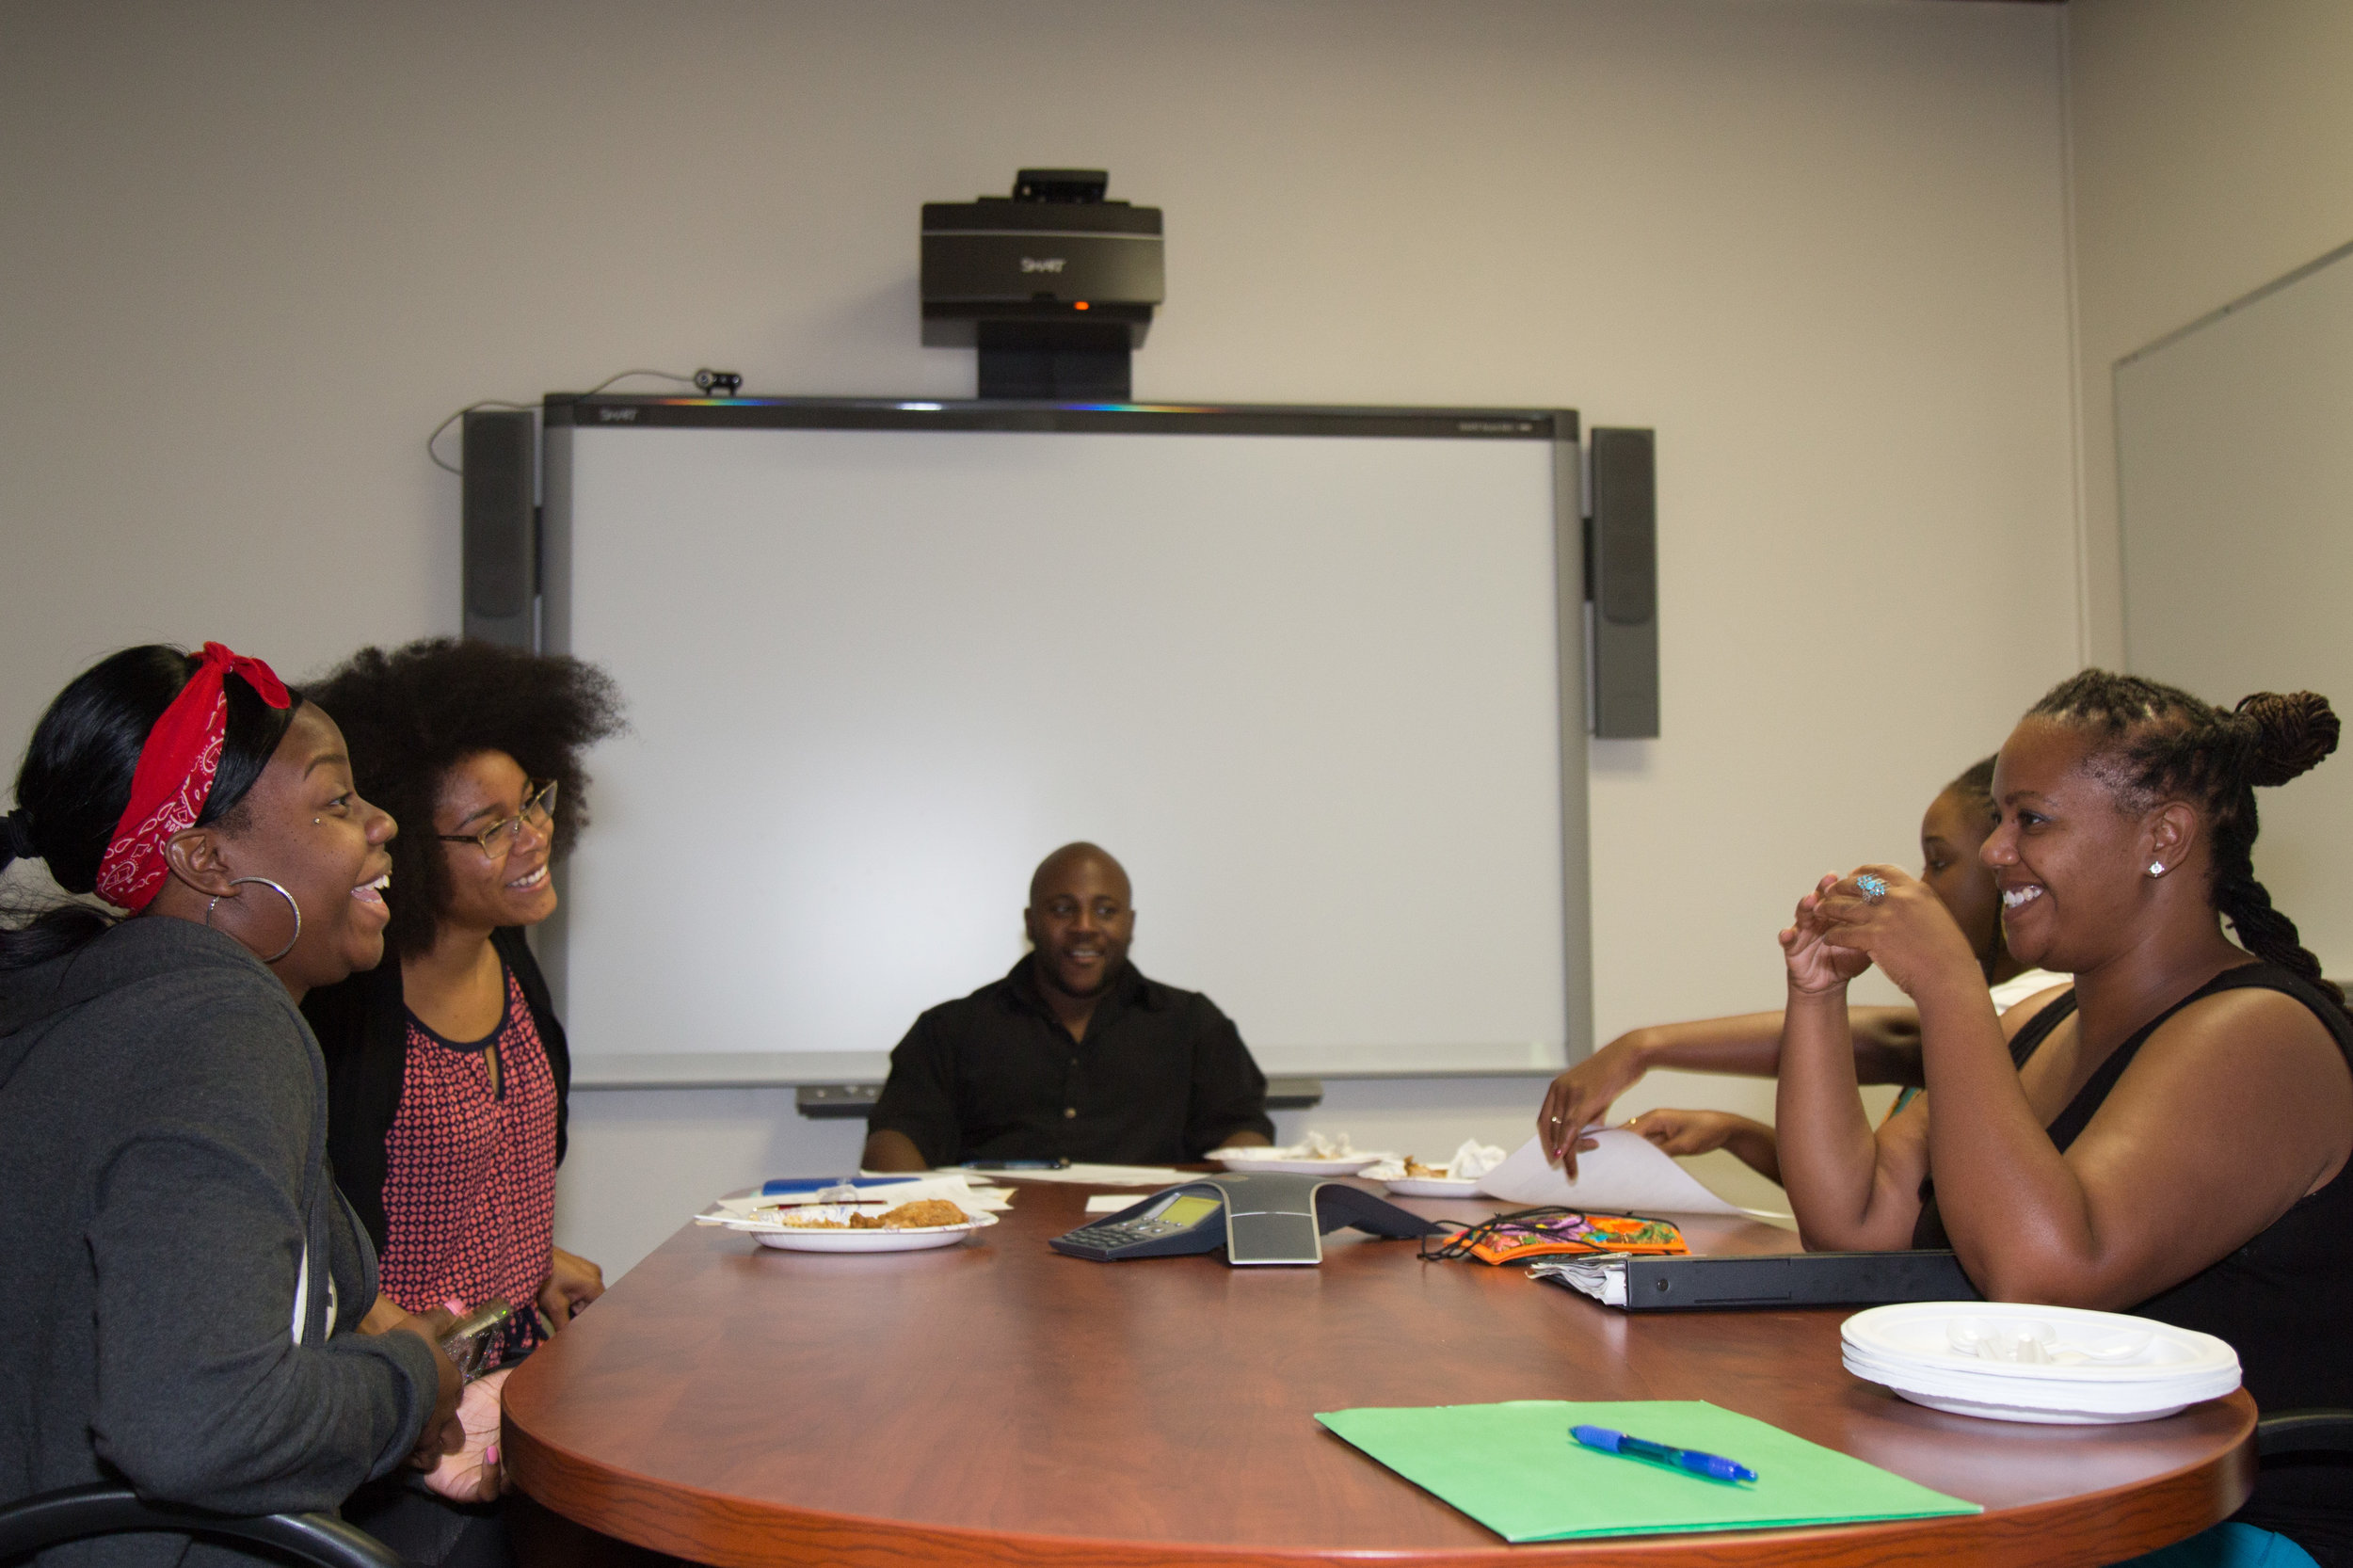 Ariba is the staff advisor for the Black Student Union at Cabrillo College. Here they are planning a campus-wide event at the beginning of the school year